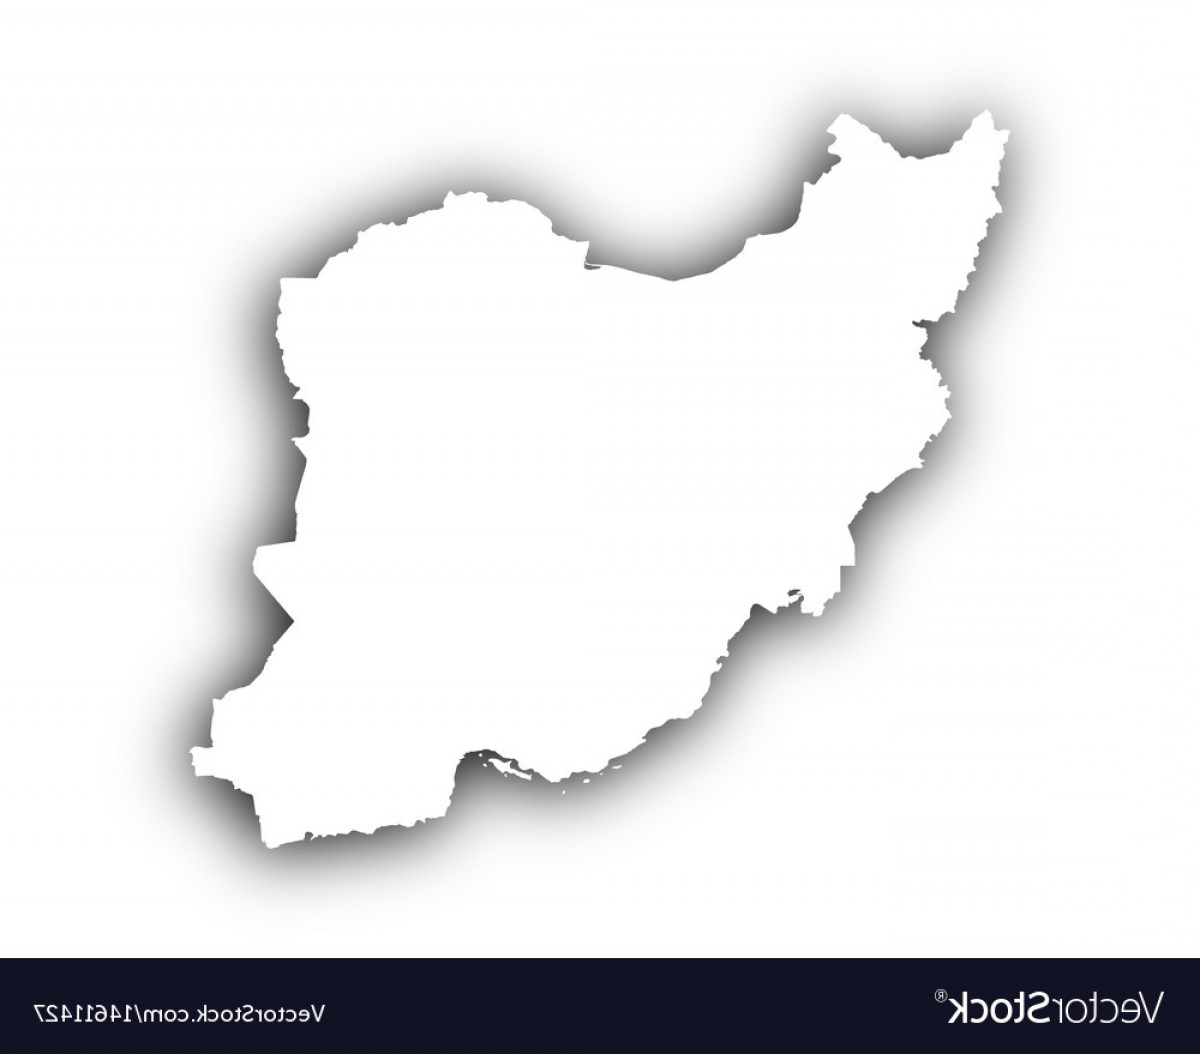 Iran Map Vector: Map Of Iran With Shadow Vector